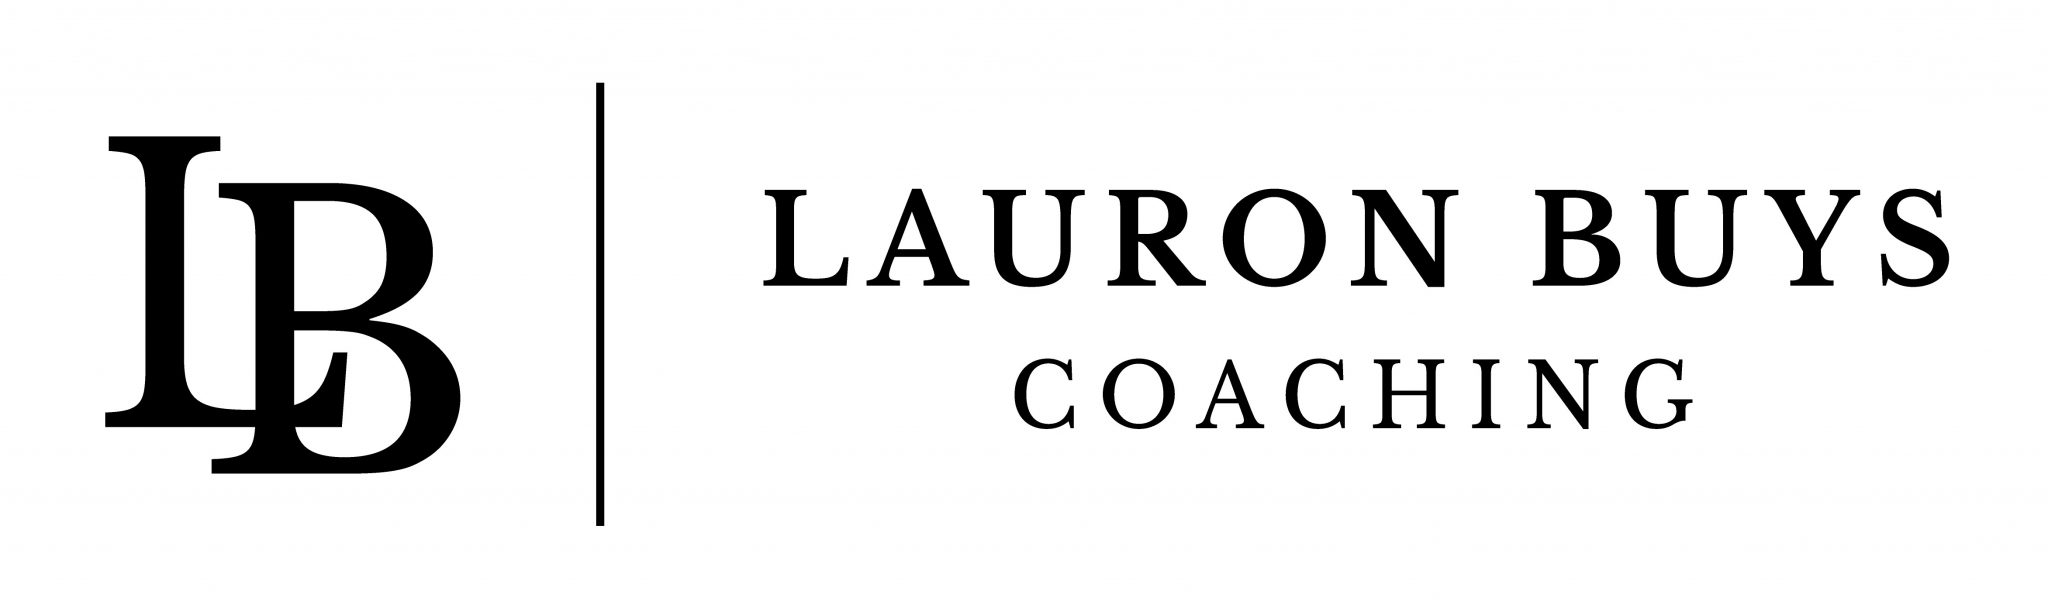 Lauron Buys Coaching